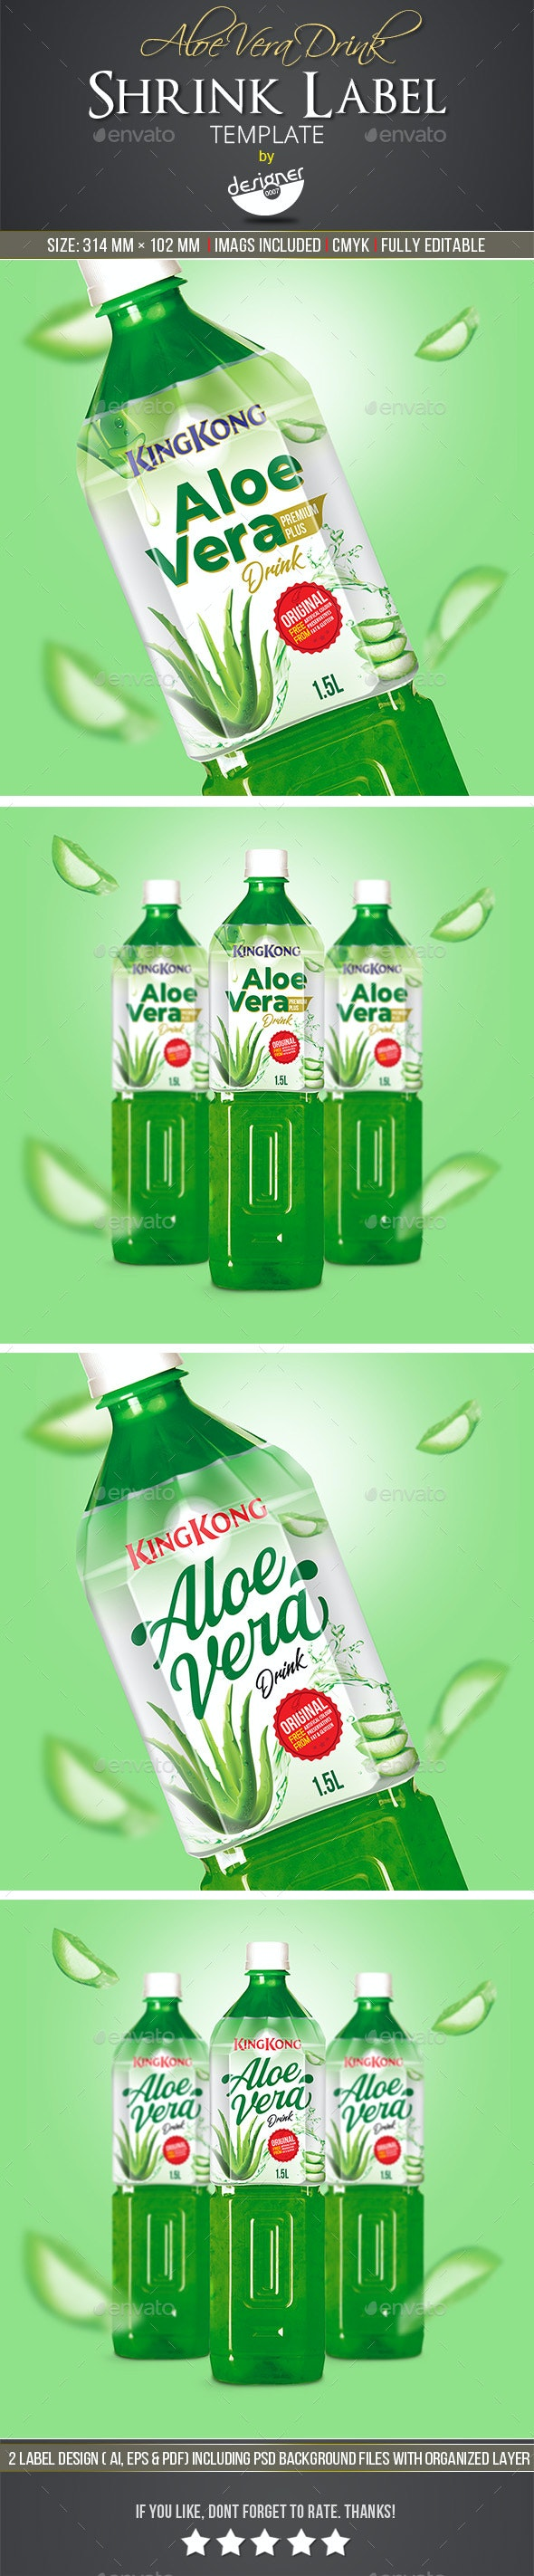 Aloe Vera Drink Label Template - Packaging Print Templates